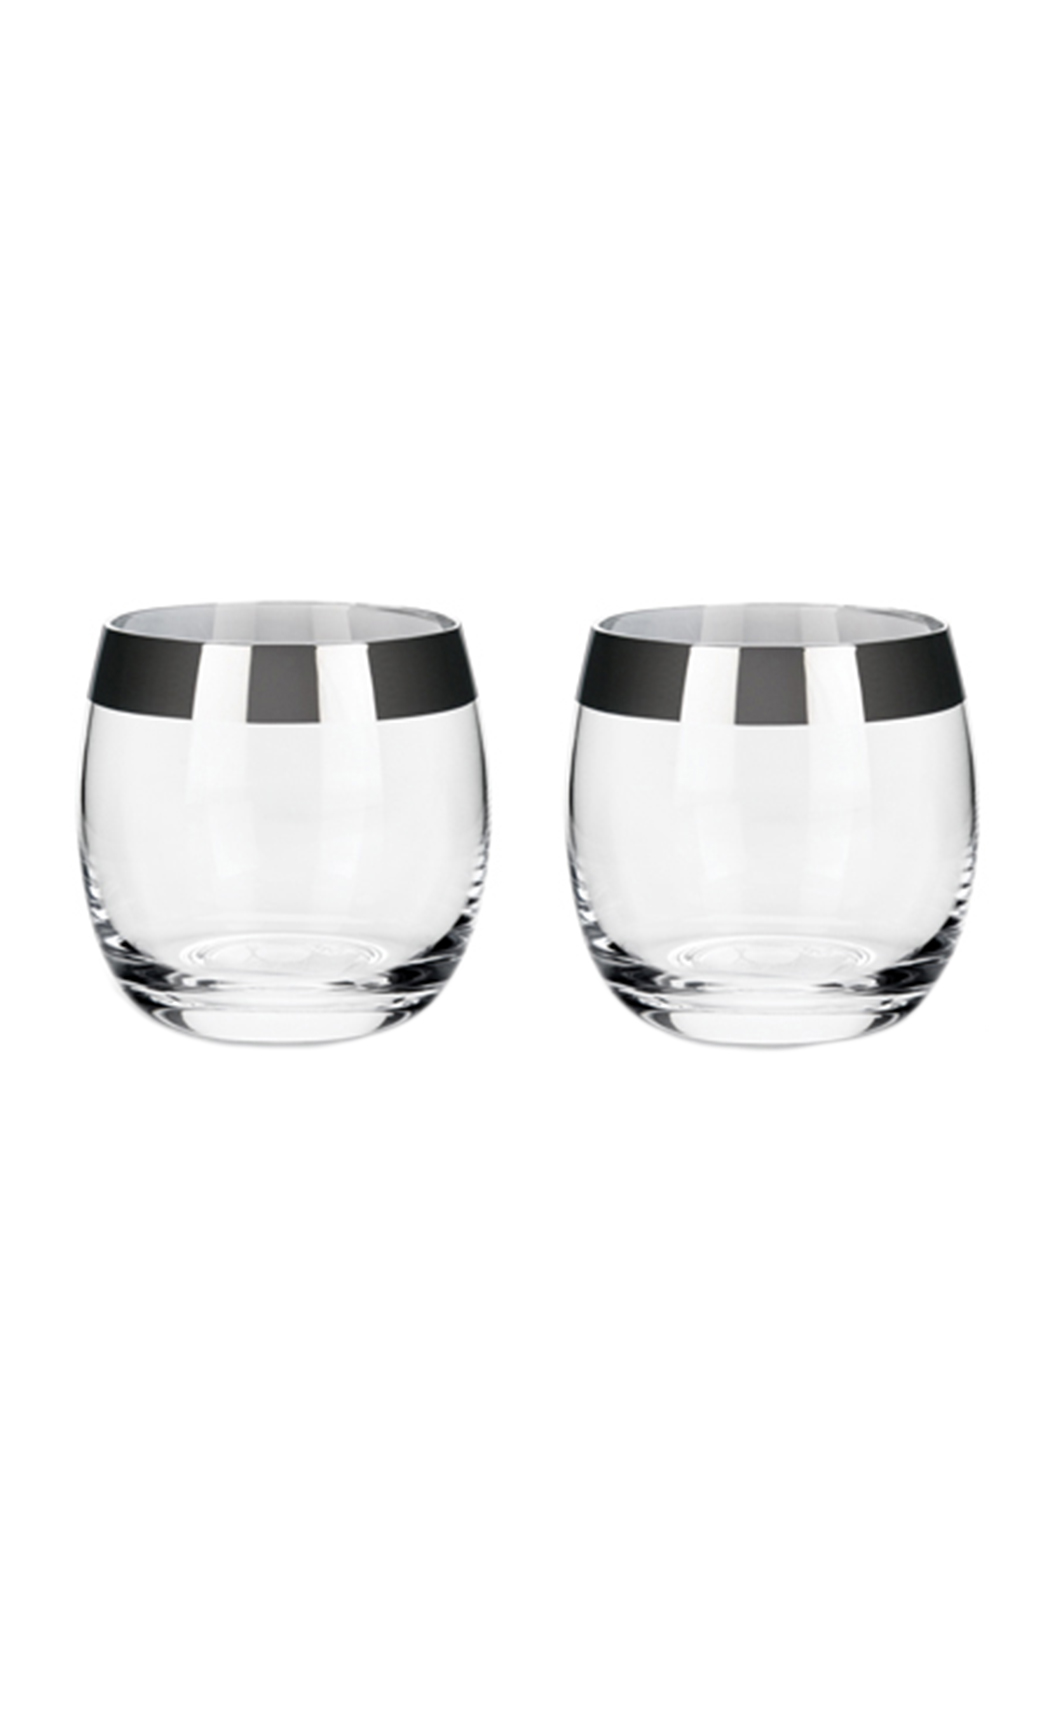 Irving: Chrome Rim Tumbler Set